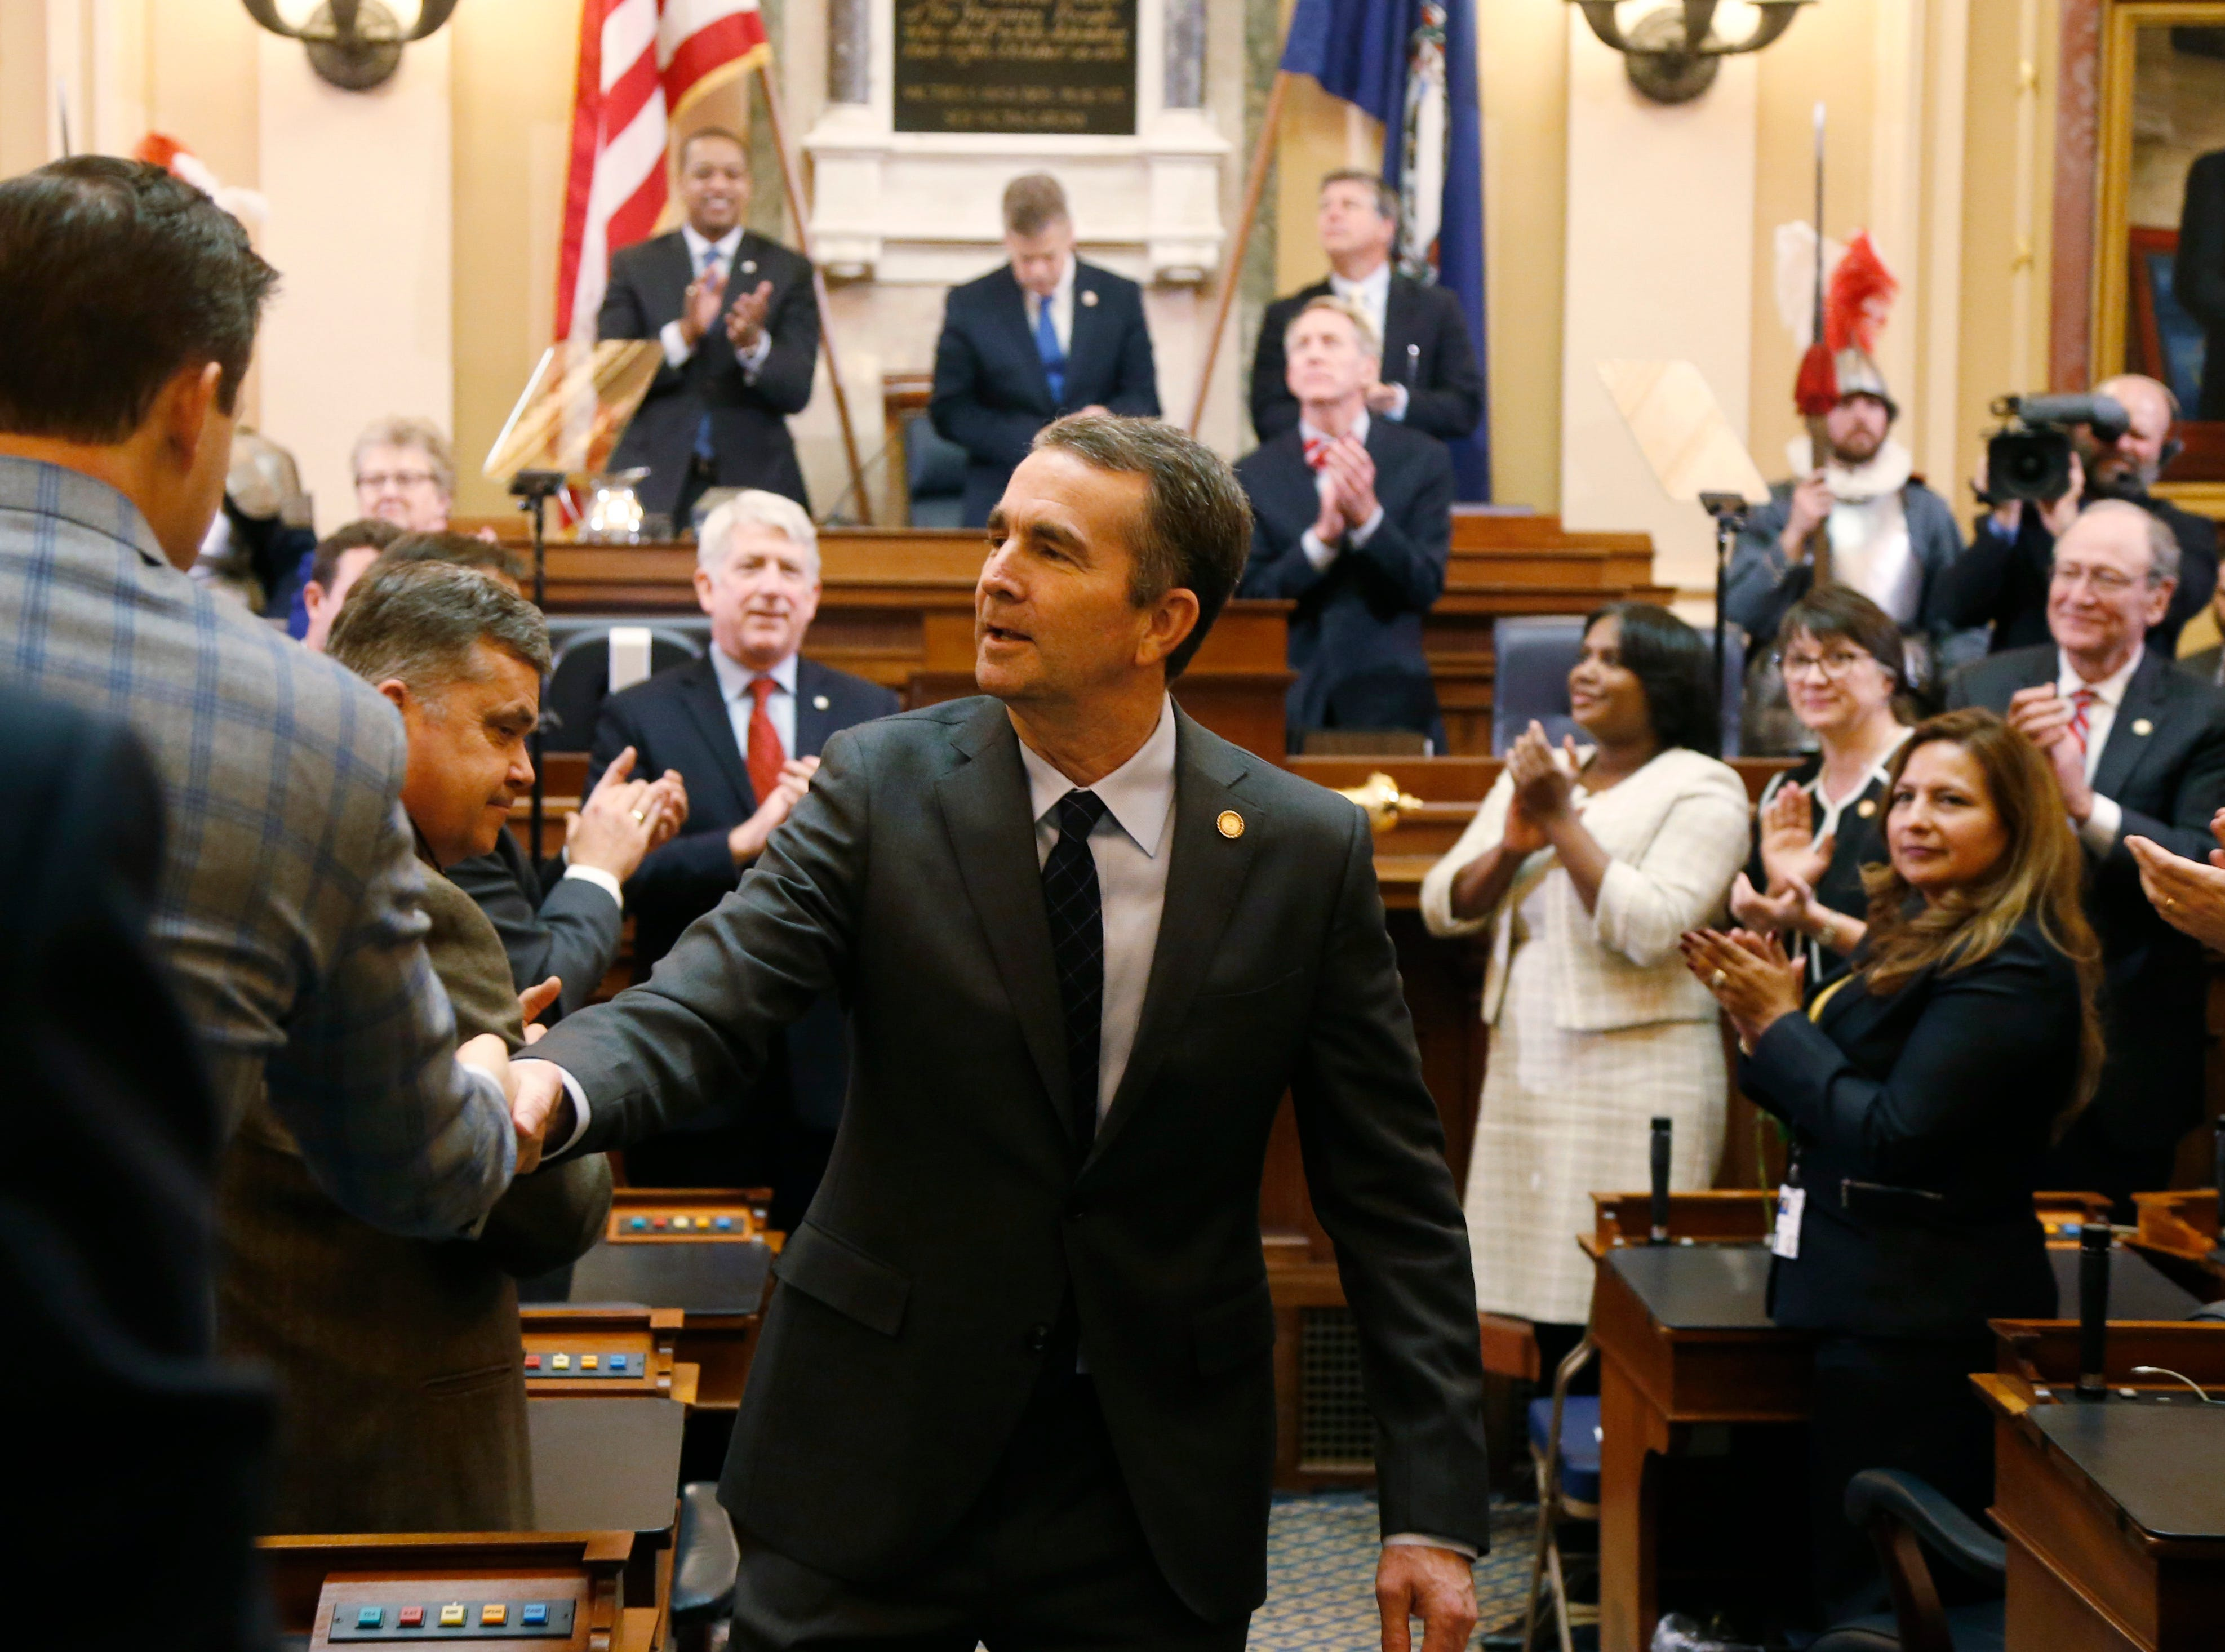 Virginia Gov. Ralph Northam shakes hands as he leaves the chambers after he delivered his State of the Commonwealth address during a joint session of the Virginia Legislature in the House chambers at the Capitol in Richmond, Va., Wednesday, Jan. 9, 2019.